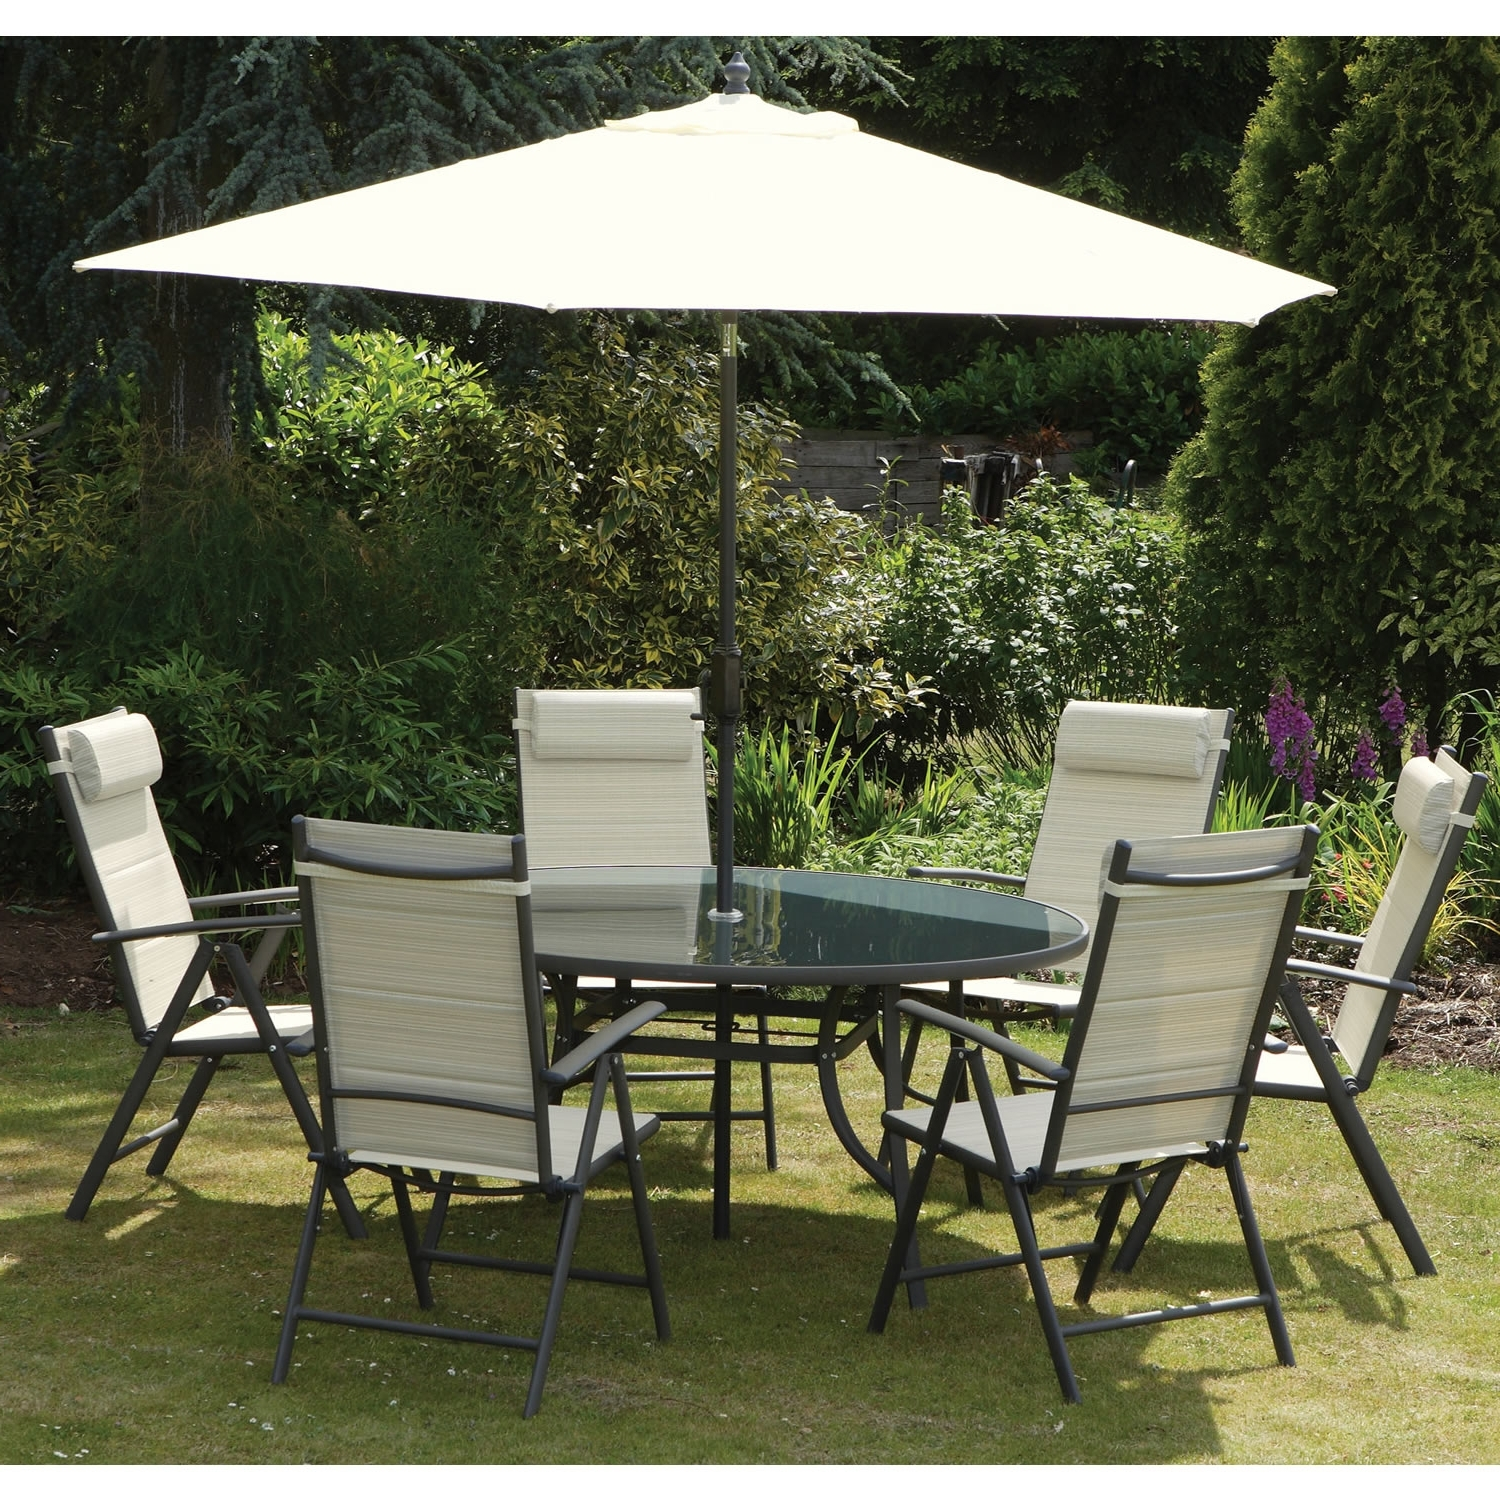 Recent Plastic Patio Furniture Sets Roselawnlutheran Intended For Patio Table And Chairs With Umbrellas (View 7 of 20)